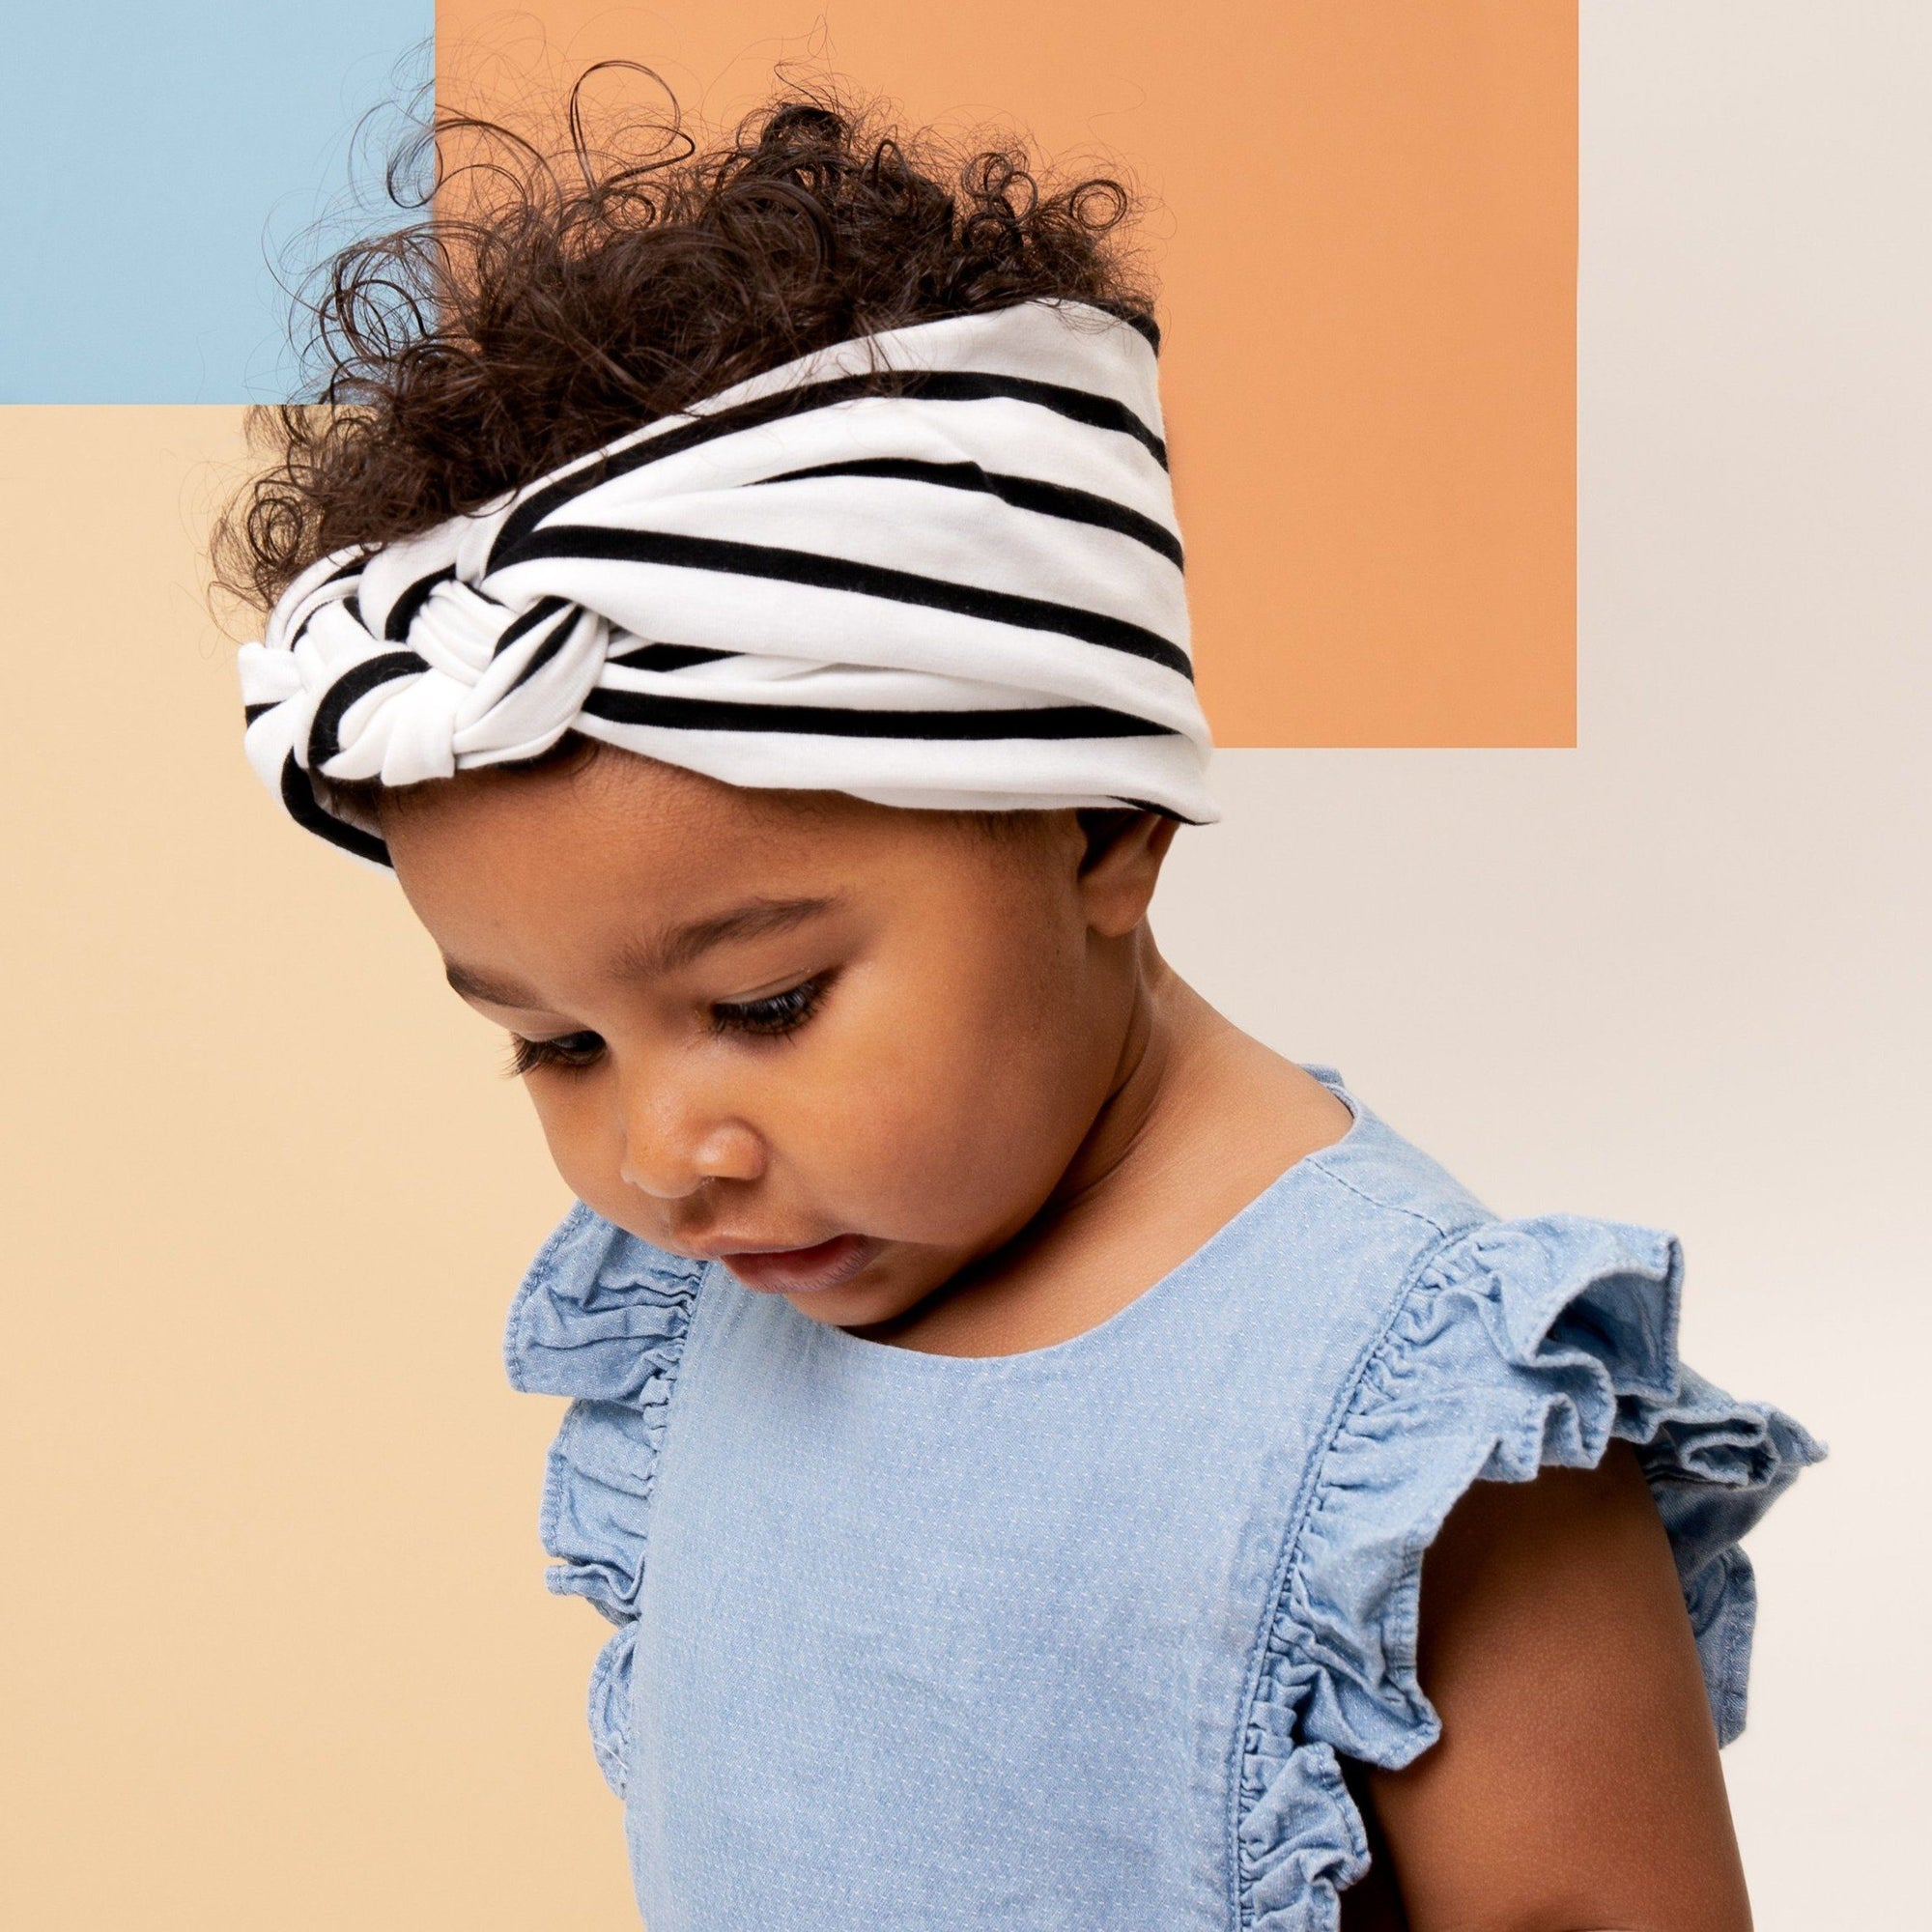 Sailor headband - POEMA Birth band Adult hat chimio cap